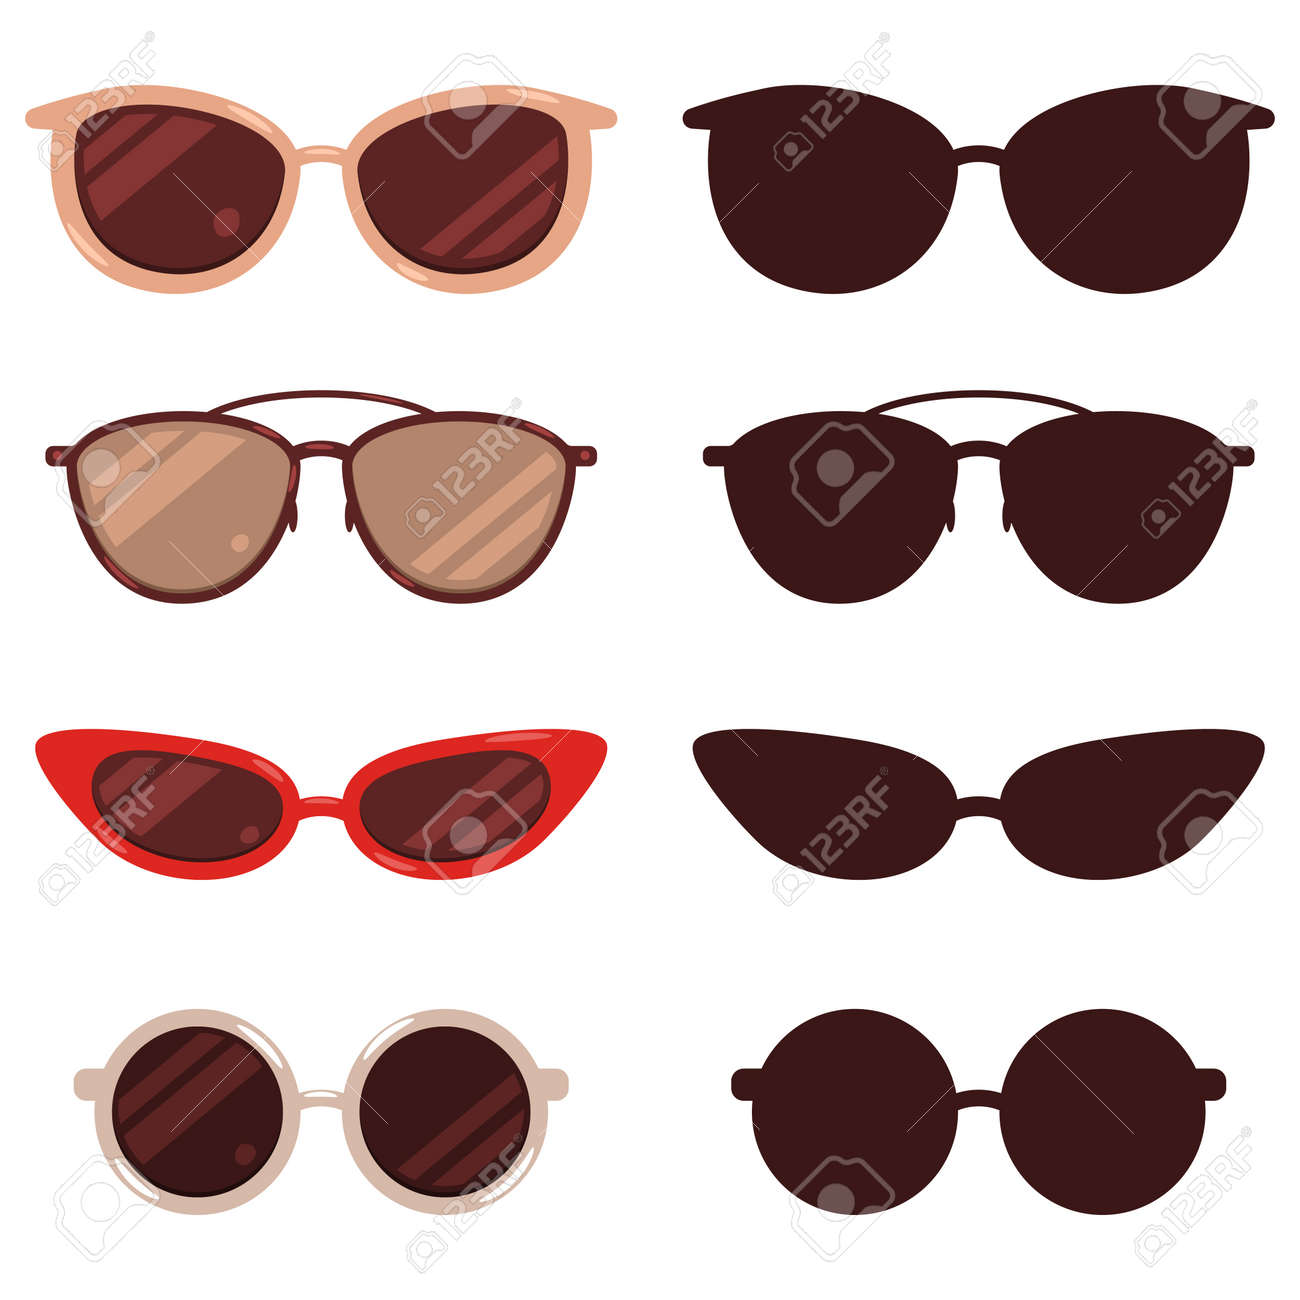 Sunglasses vector cartoon and silhouette set isolated on white background. - 170638500